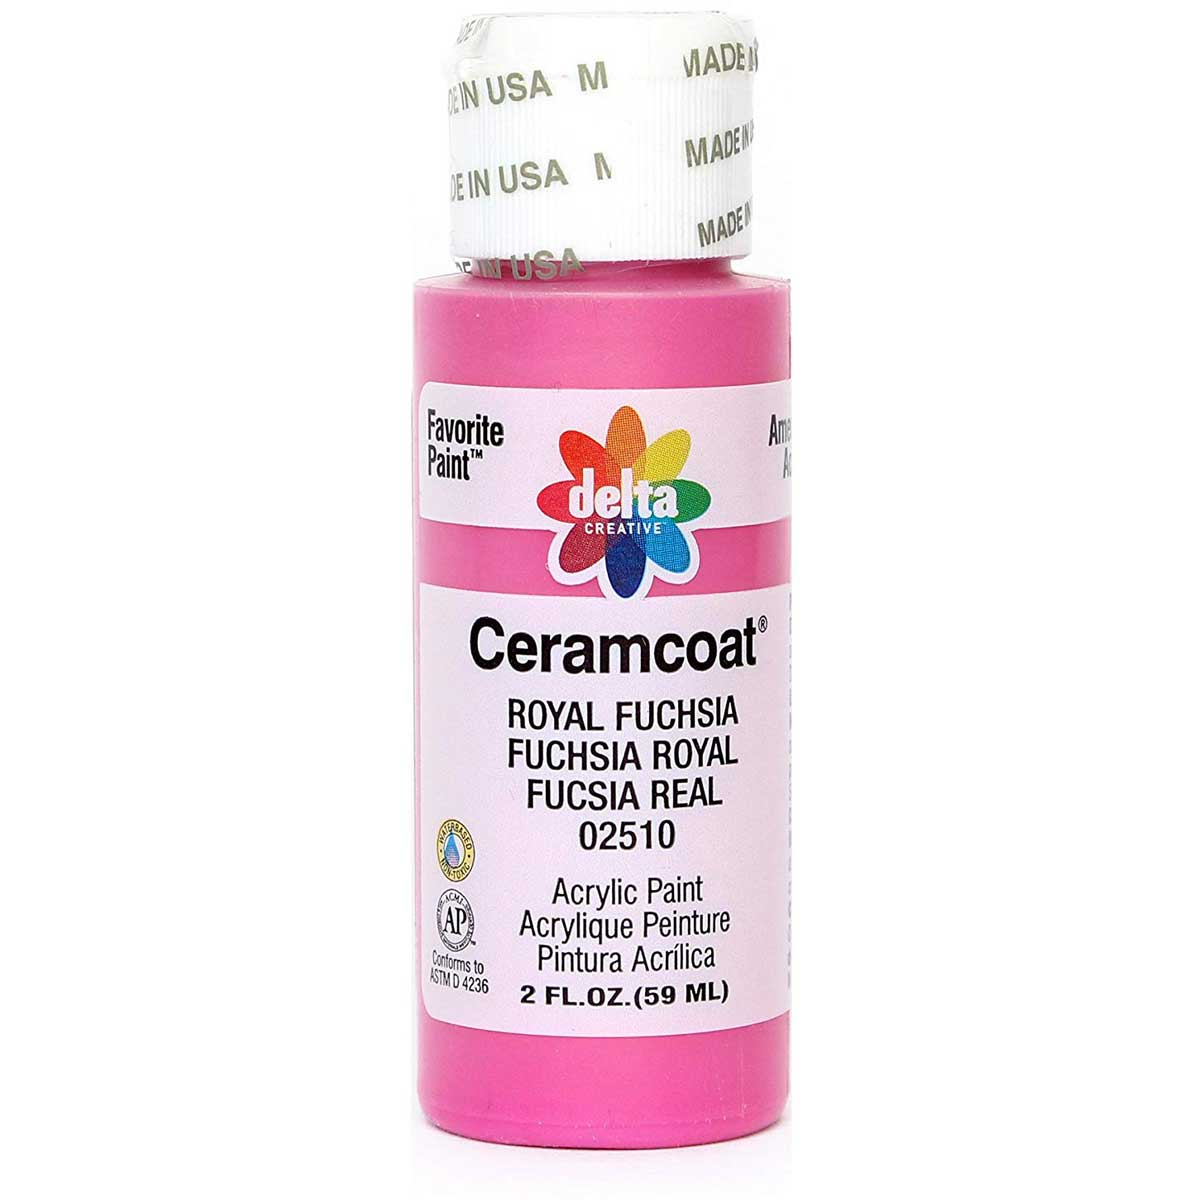 Delta Ceramcoat ® Acrylic Paint - Royal Fuchsia, 2 oz. - 025100202W